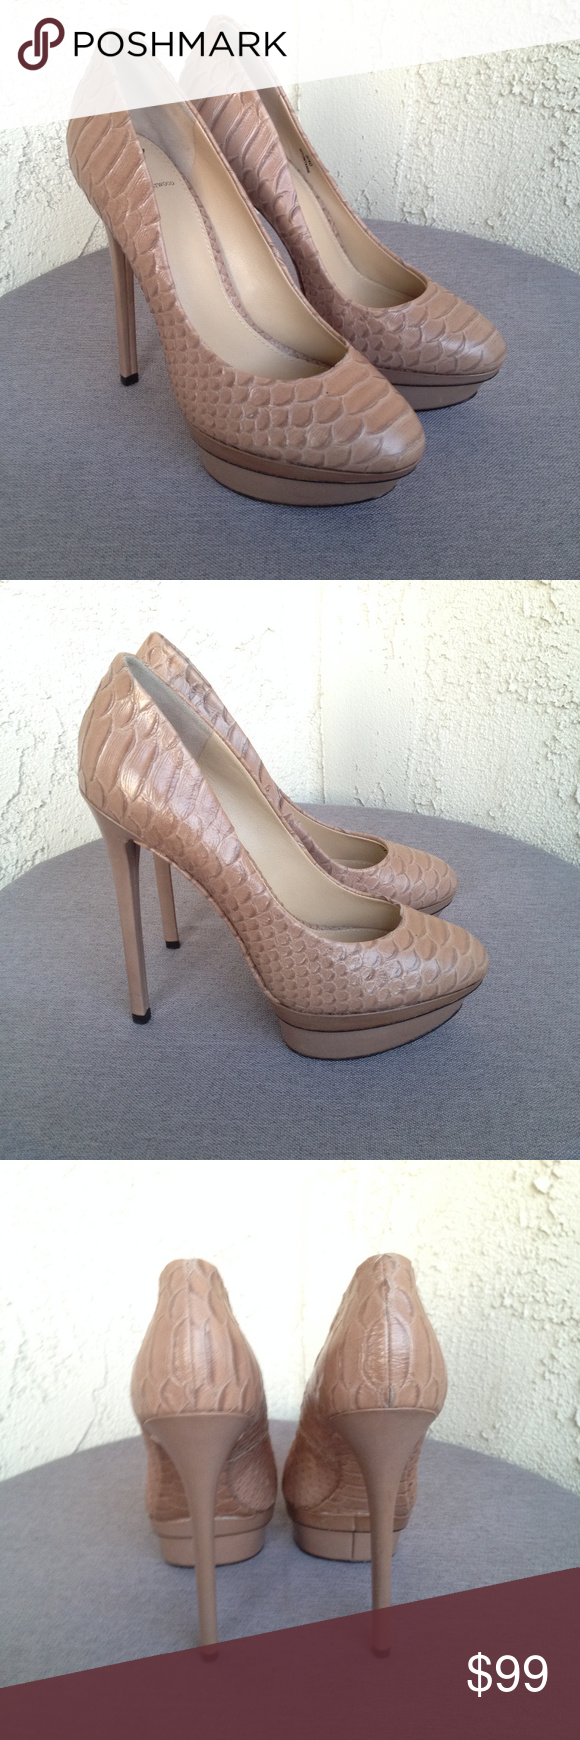 c5d8bee1034 Brian Atwood Nude Snakeskin Stilettos Heels 9 Brian Atwood Women's ...